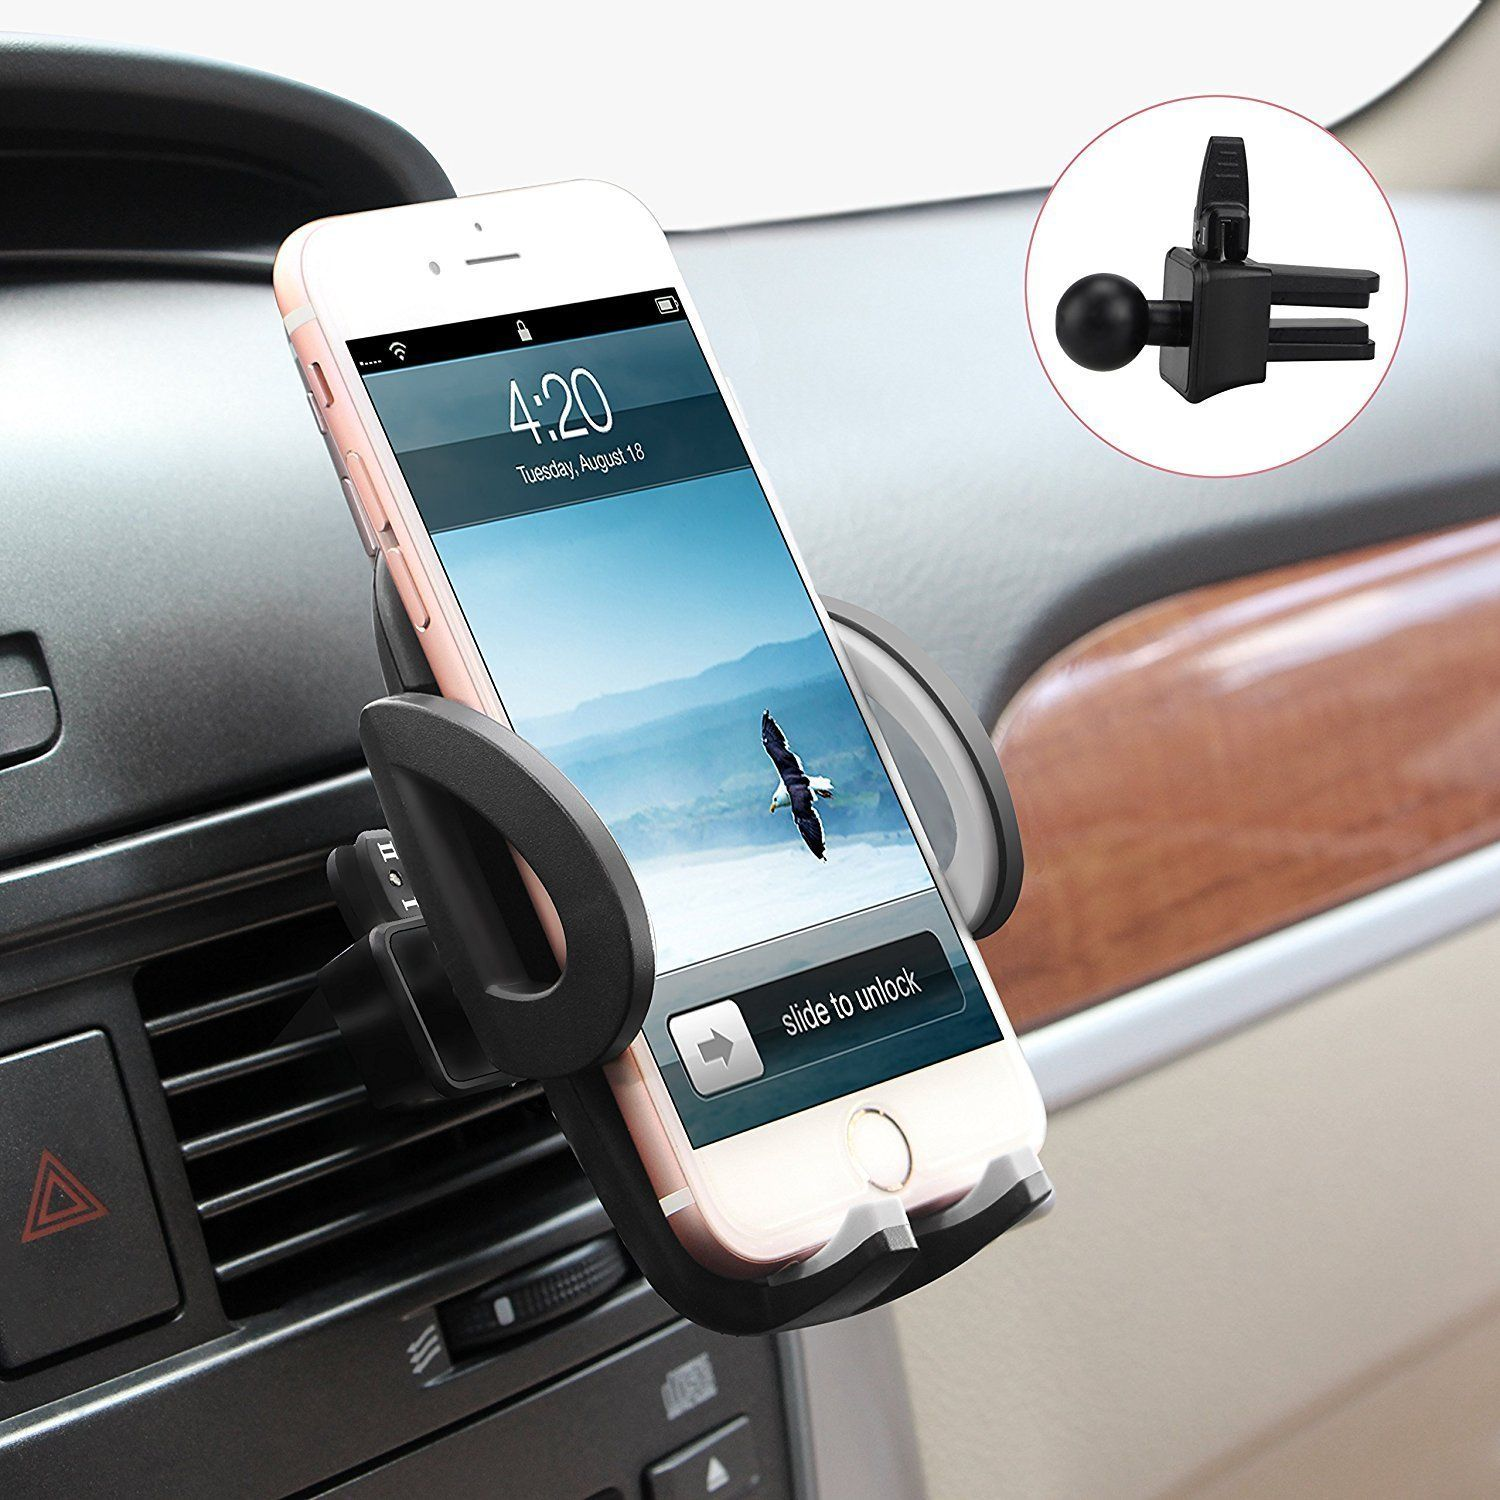 Smartphones Car Air Vent Mount Holder Cradle Compatible with iPhone 7 7 Plus SE 6s 6 Plus 6 5s 5 4s 4 Samsung Galaxy S6 S5 S4 LG Nexus for Sony for Nokia and More Black